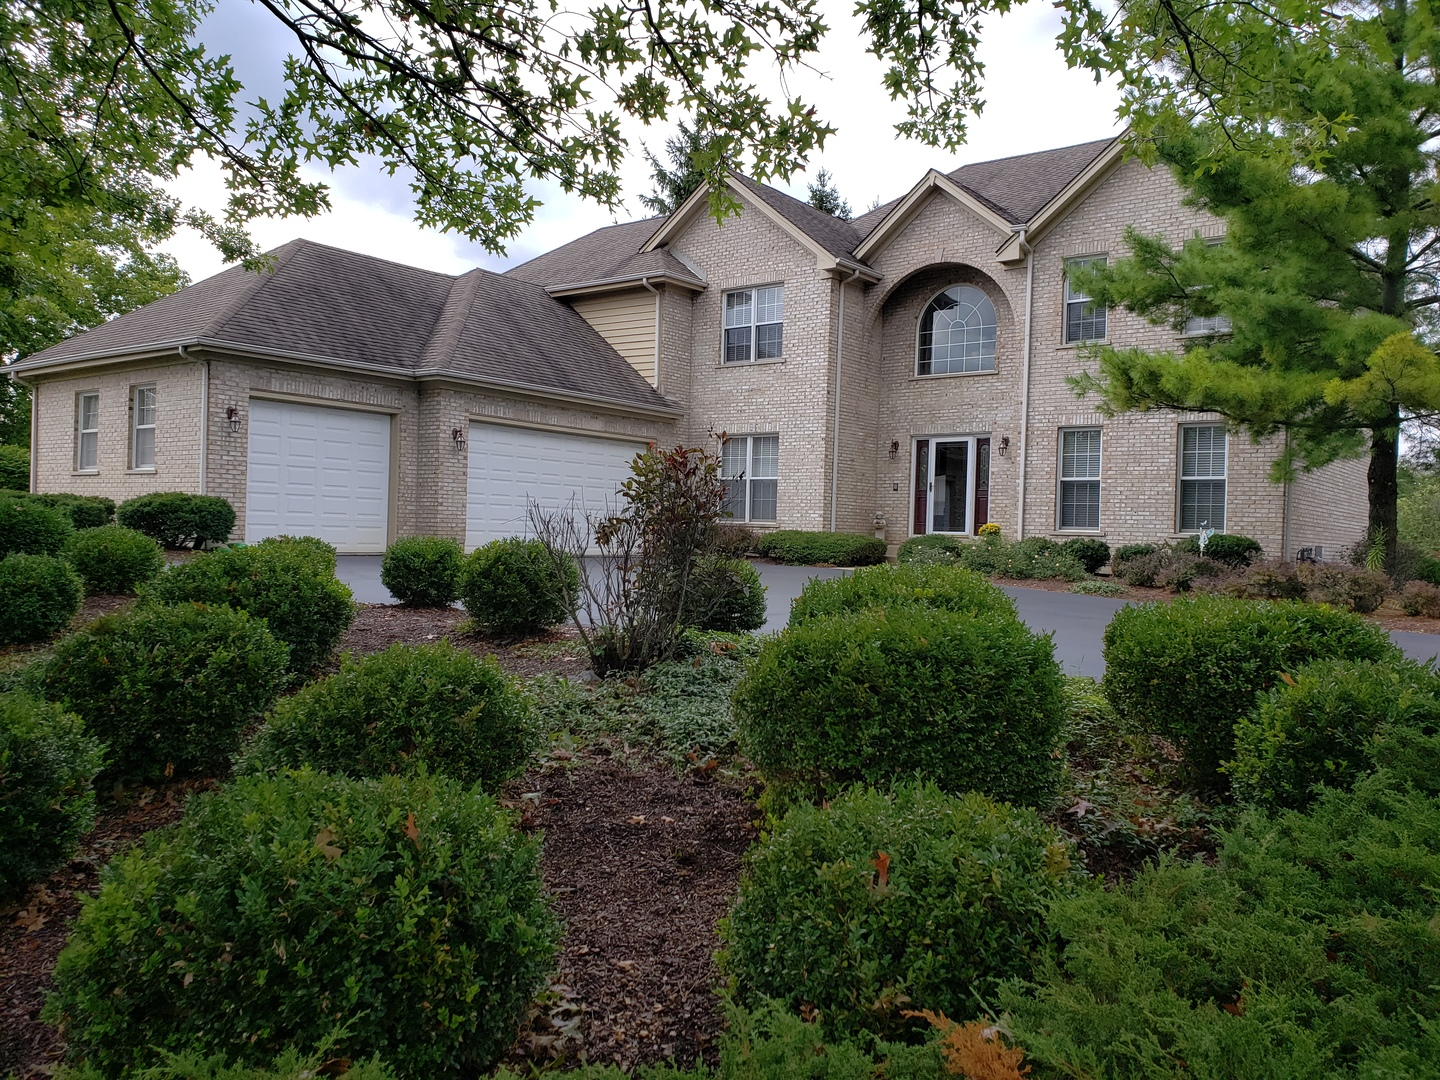 primary photo for 25020 North Abbey Glenn Drive, Hawthorn Woods, IL 60047, US